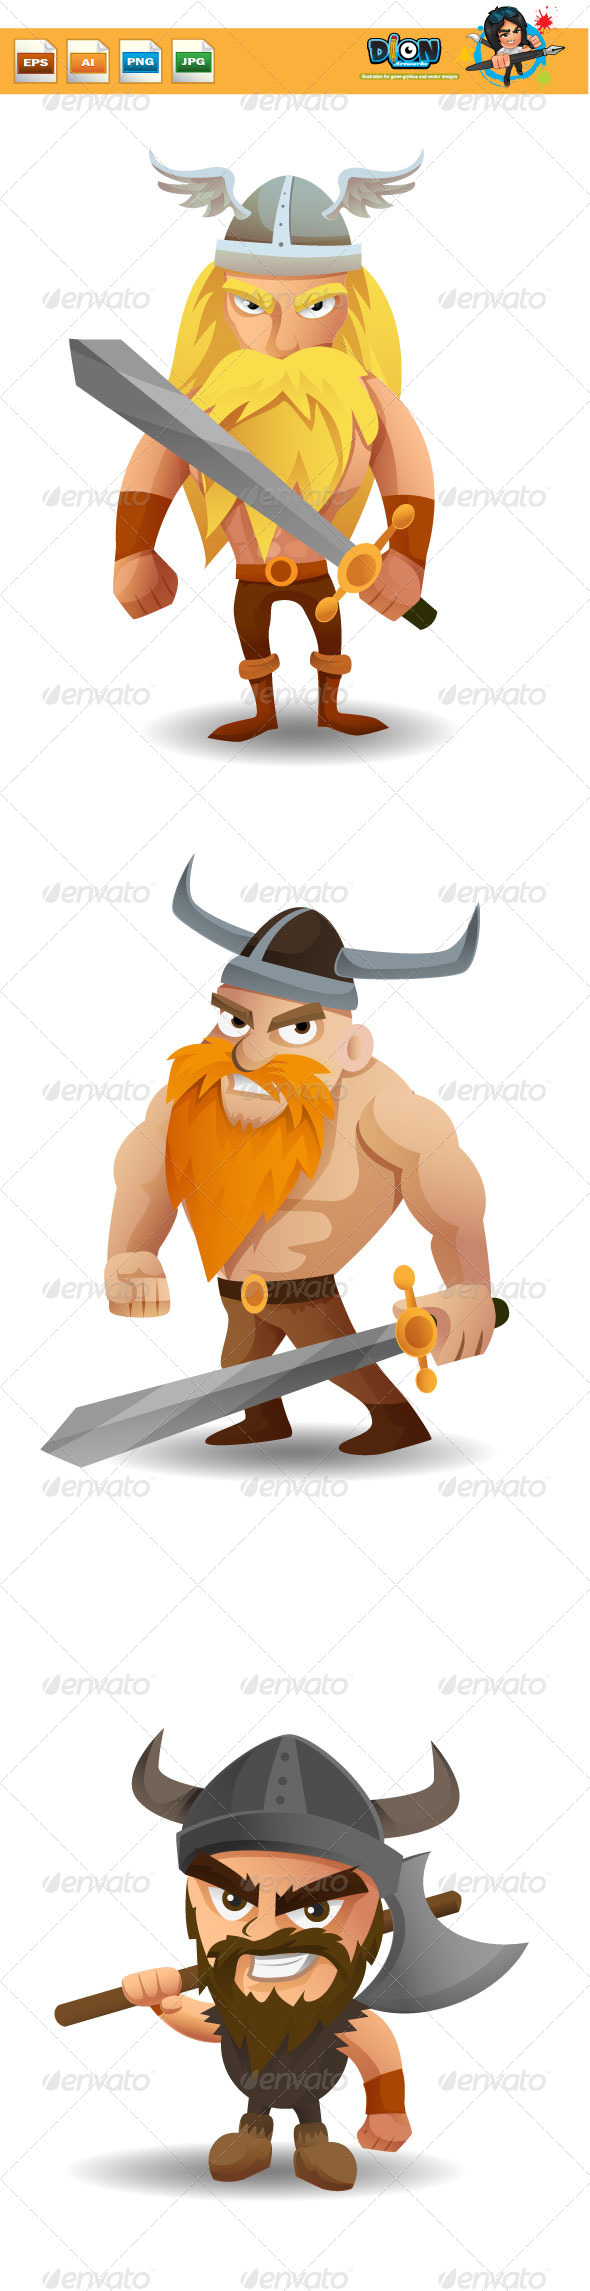 GraphicRiver Vikings 8358296